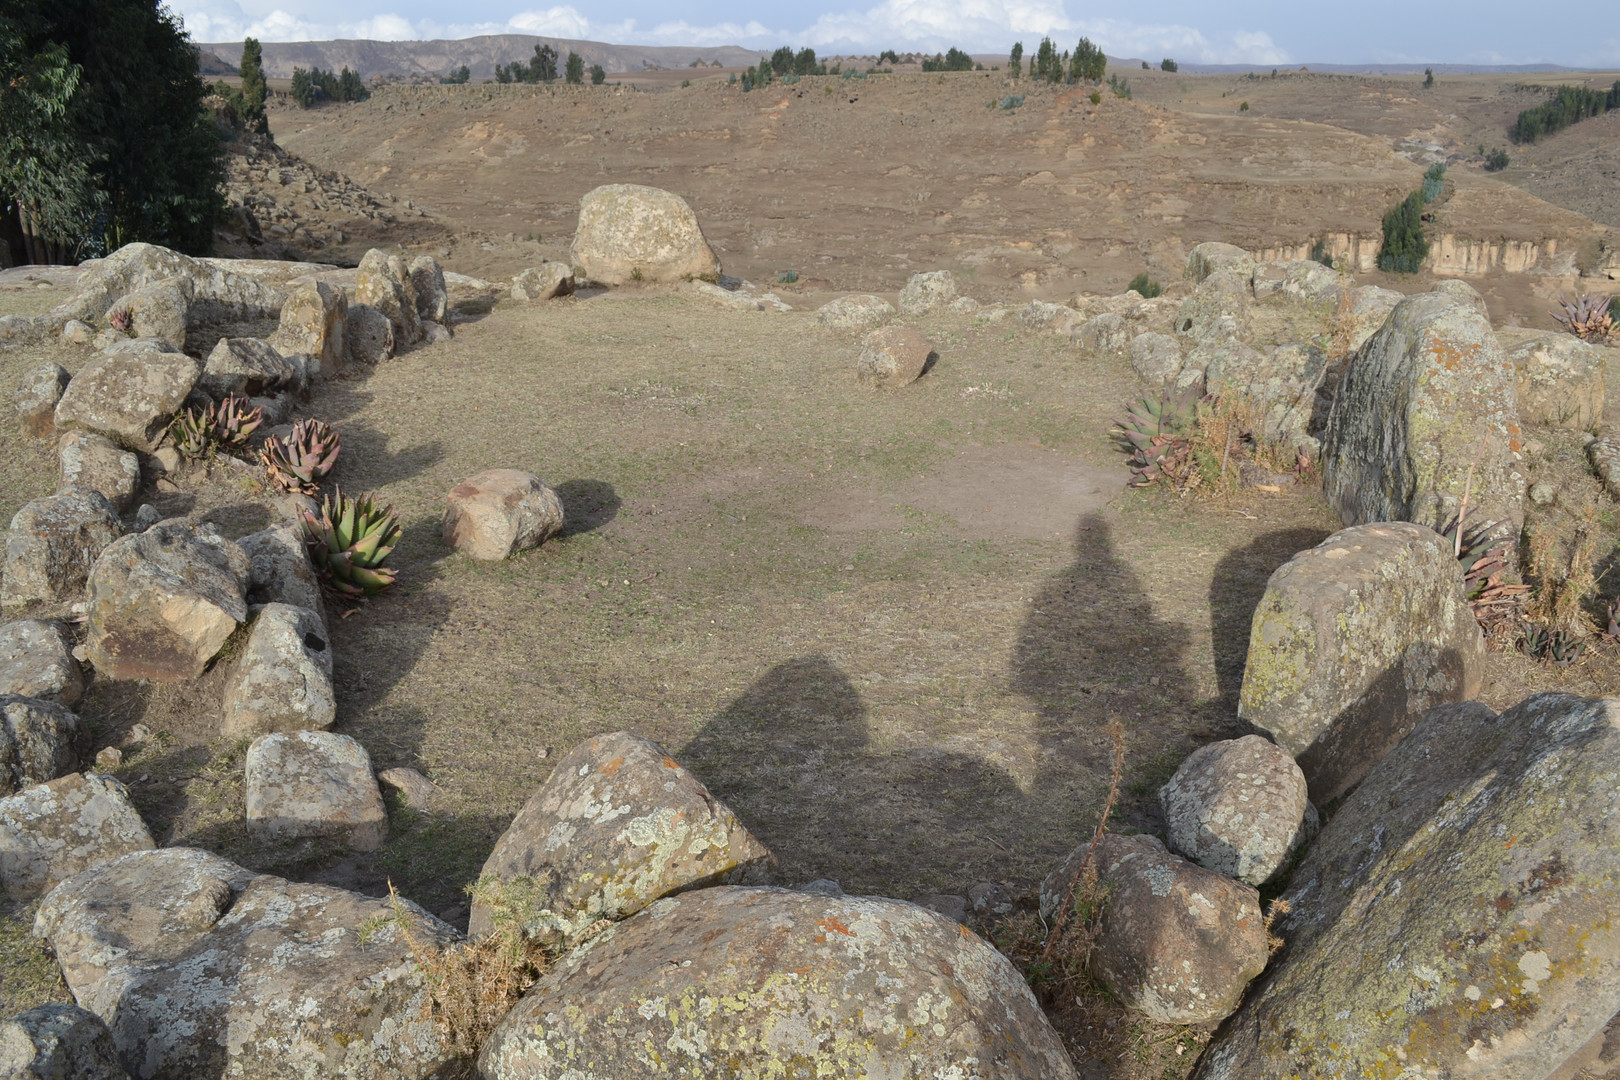 Aligned stones claimed to be the remains of the 'palace' of Mäḥariw Amlak, Yǝkunno Amlak's grandfather, on a hill north of the church